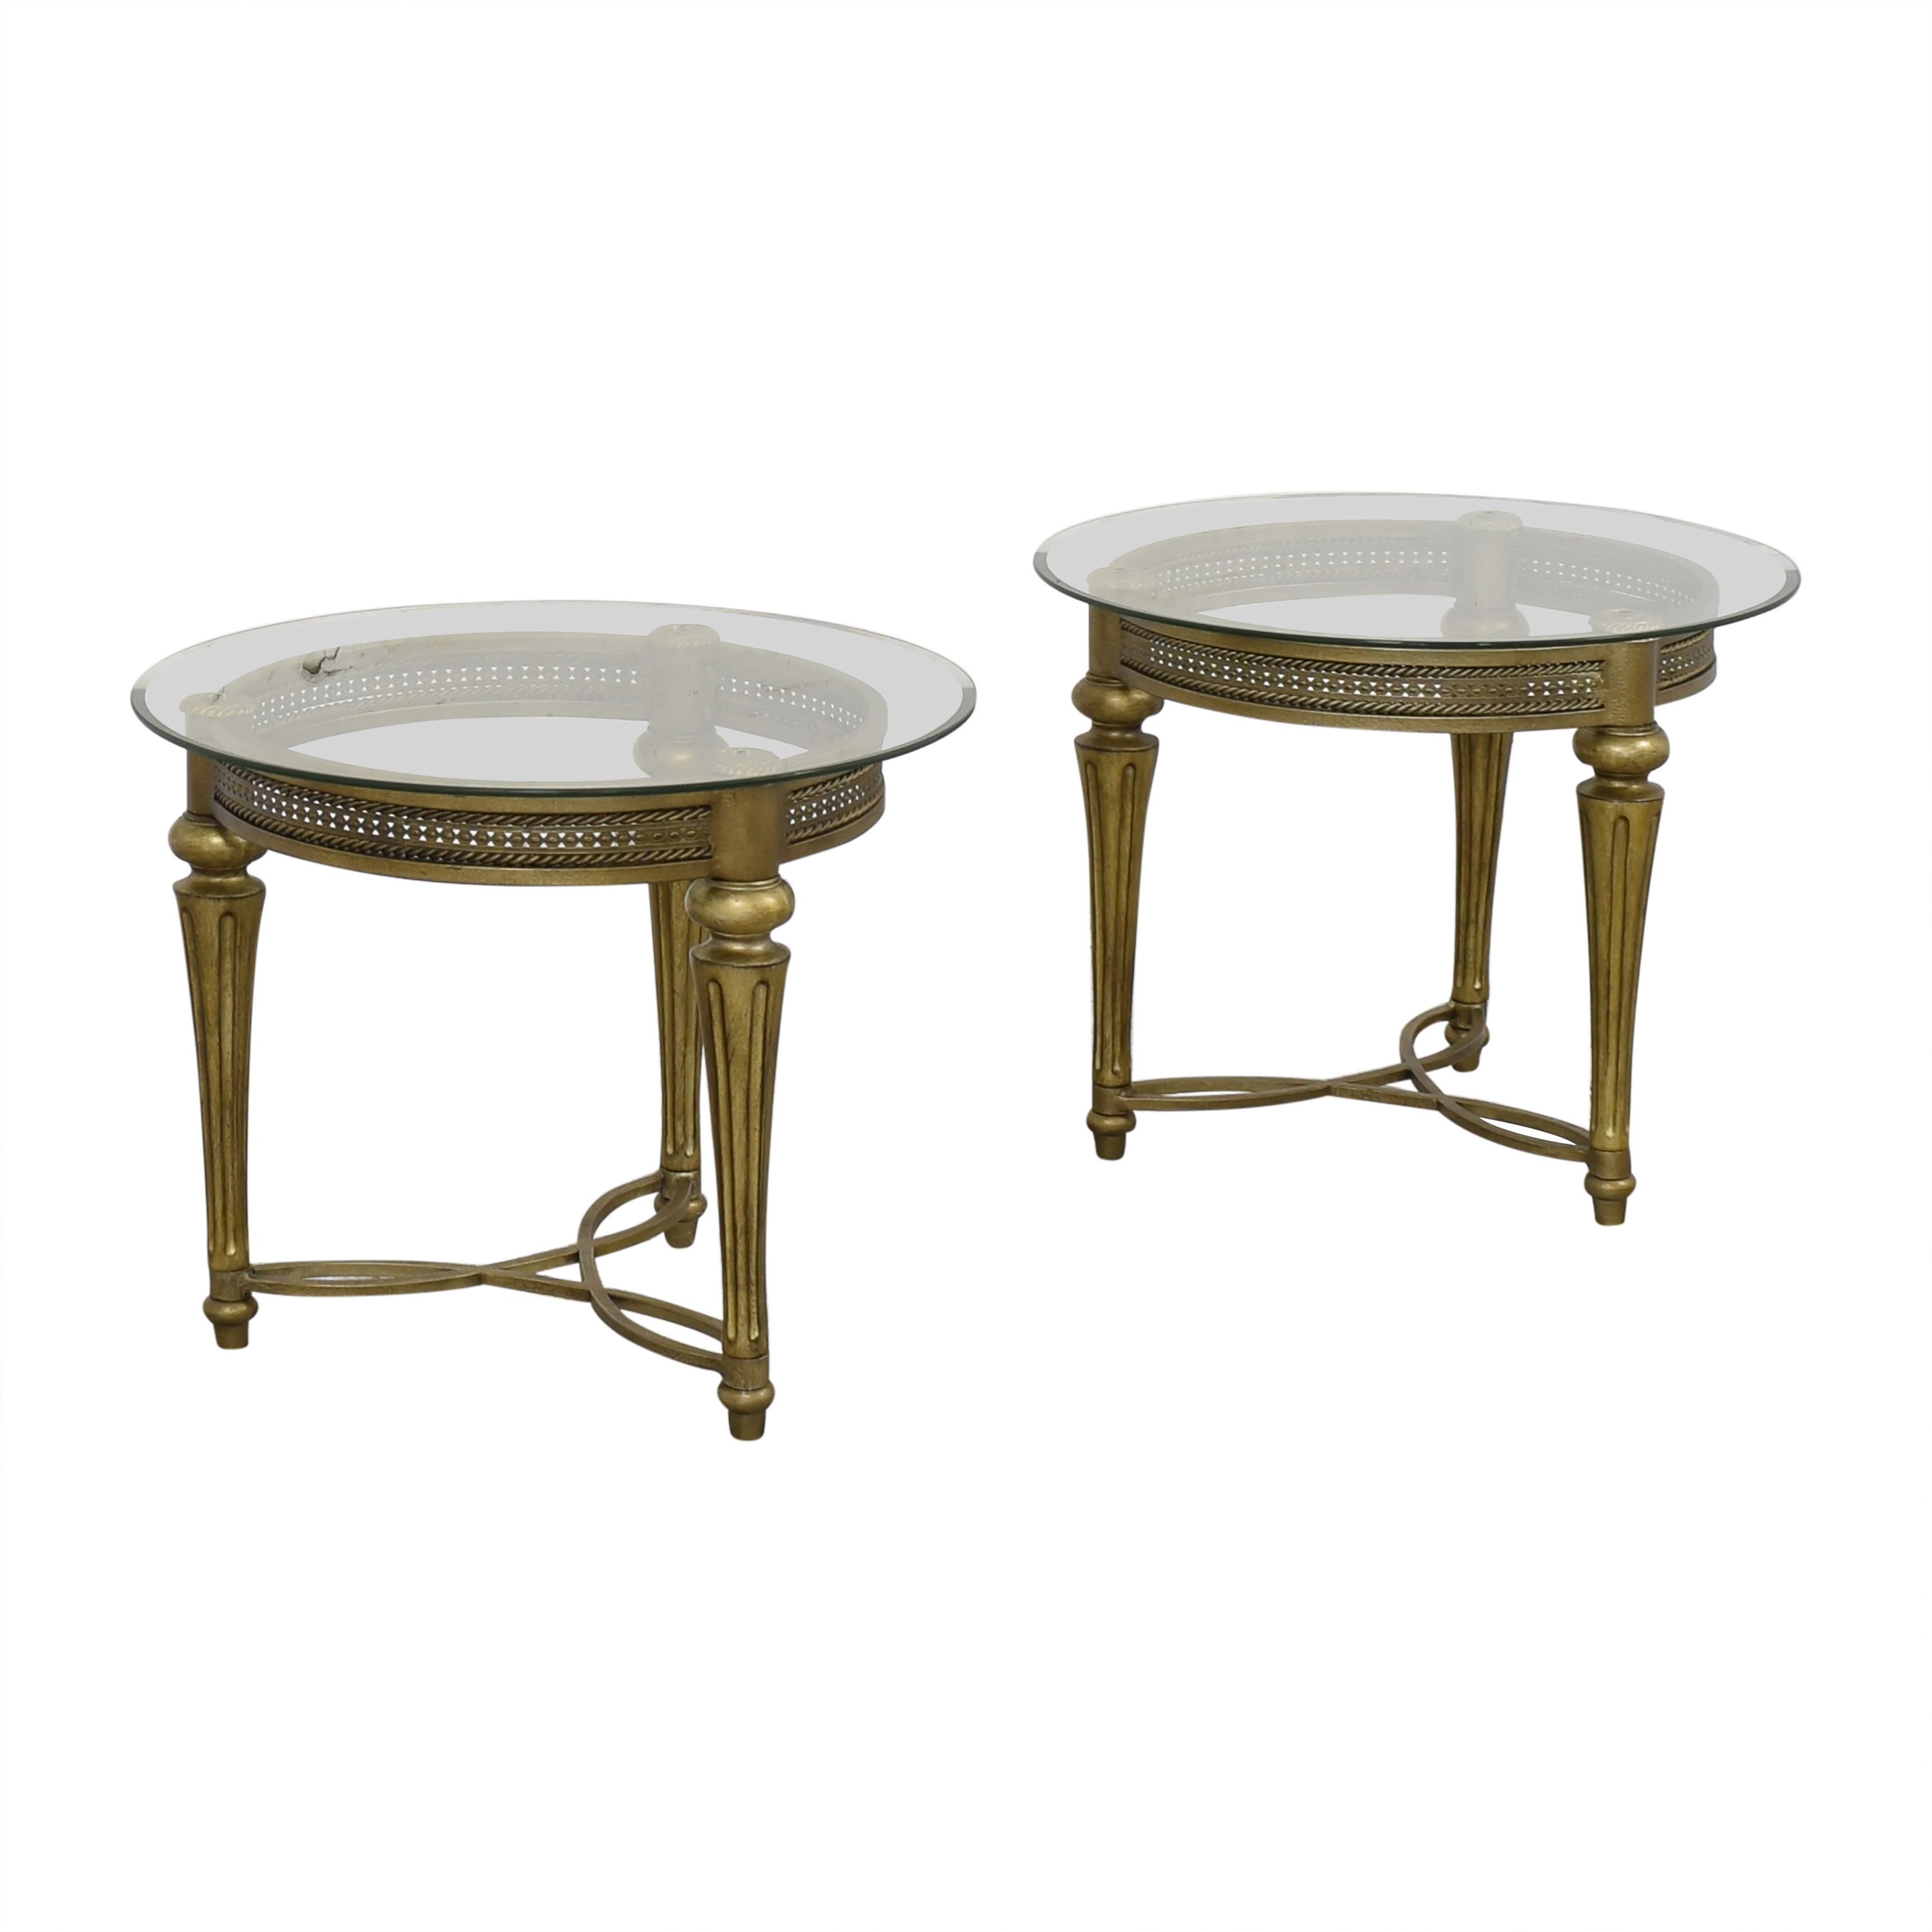 Magnussen Home Magnussen Home Furniture Galloway Round End Tables nyc